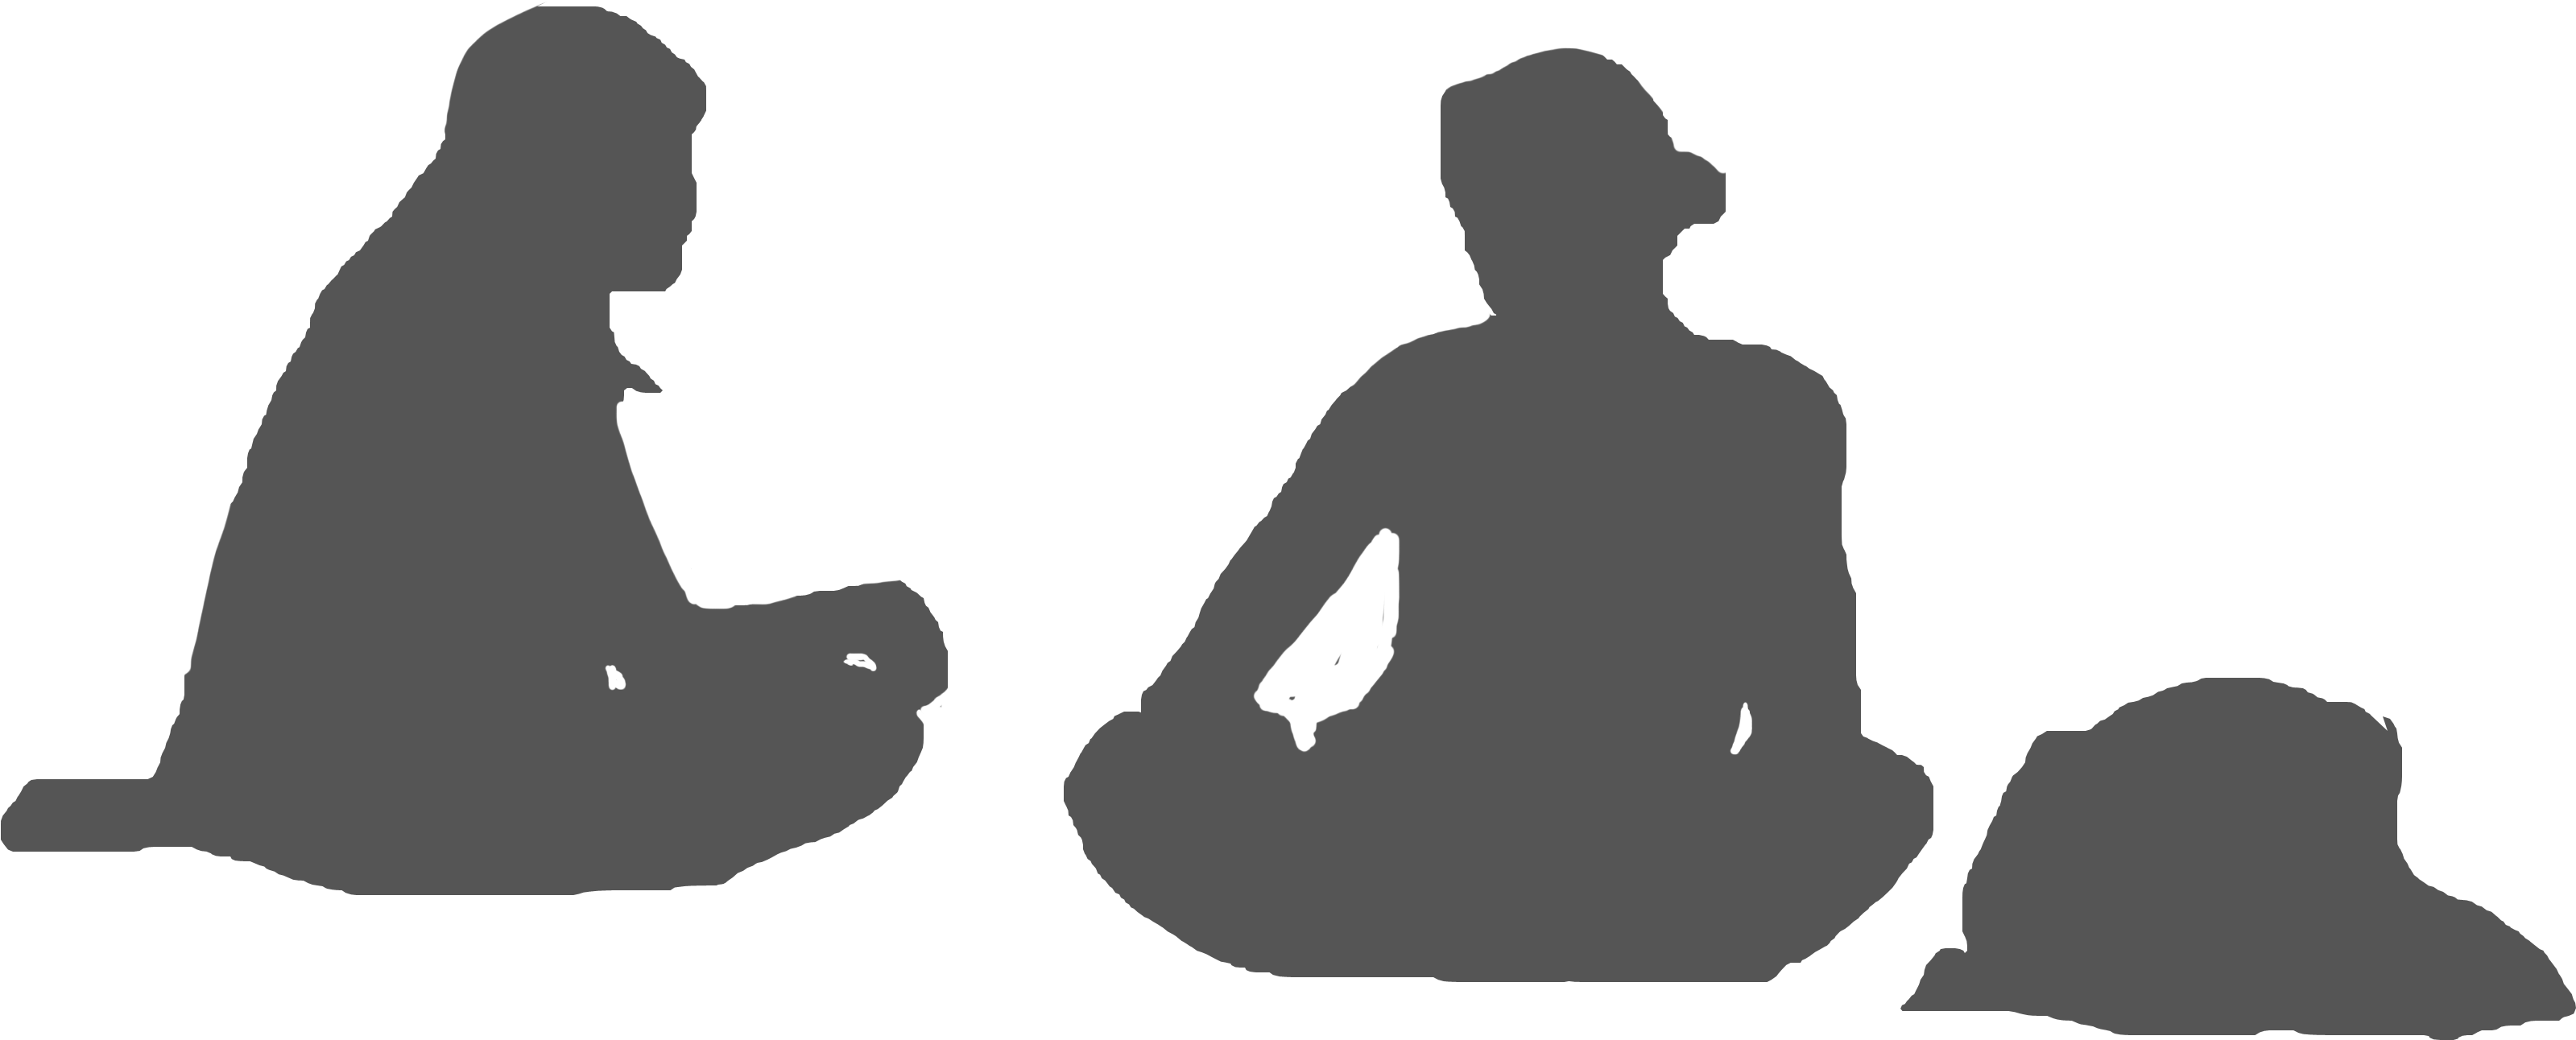 Download Human Silhouette Sitting Png Human Silhouette Png Photoshop Png Image With No Background Pngkey Com Man head and shoulders silhouette. download human silhouette sitting png